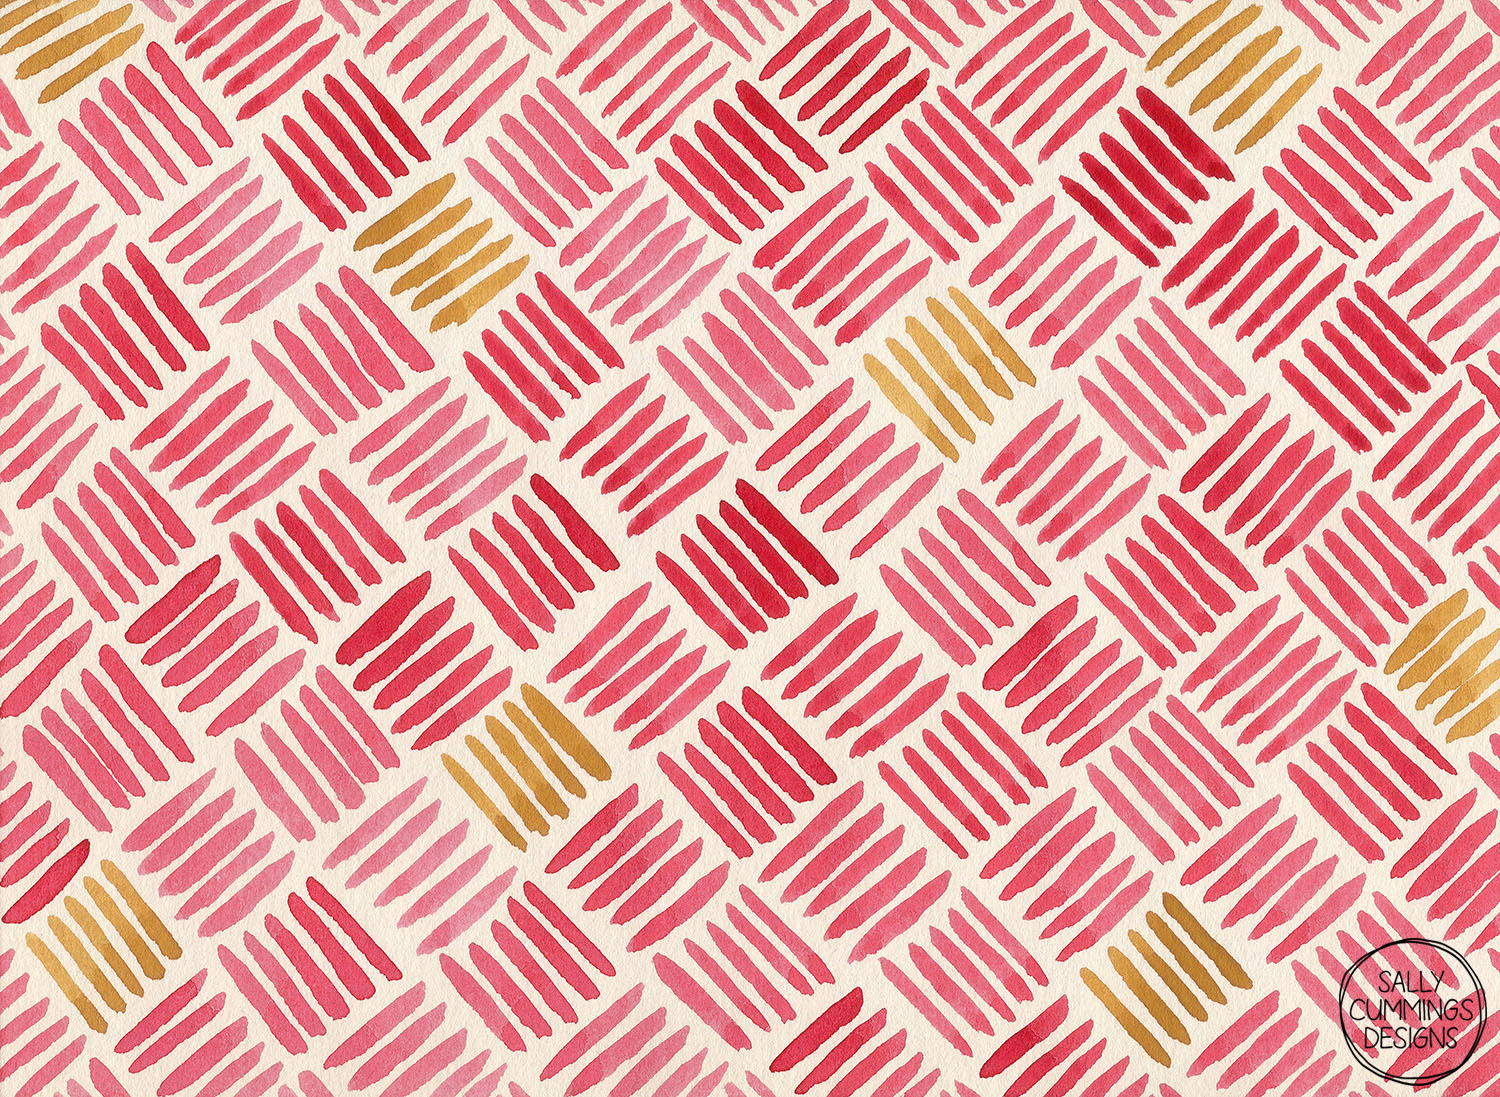 Sally Cummings Designs - Red and Ochre Basketweave